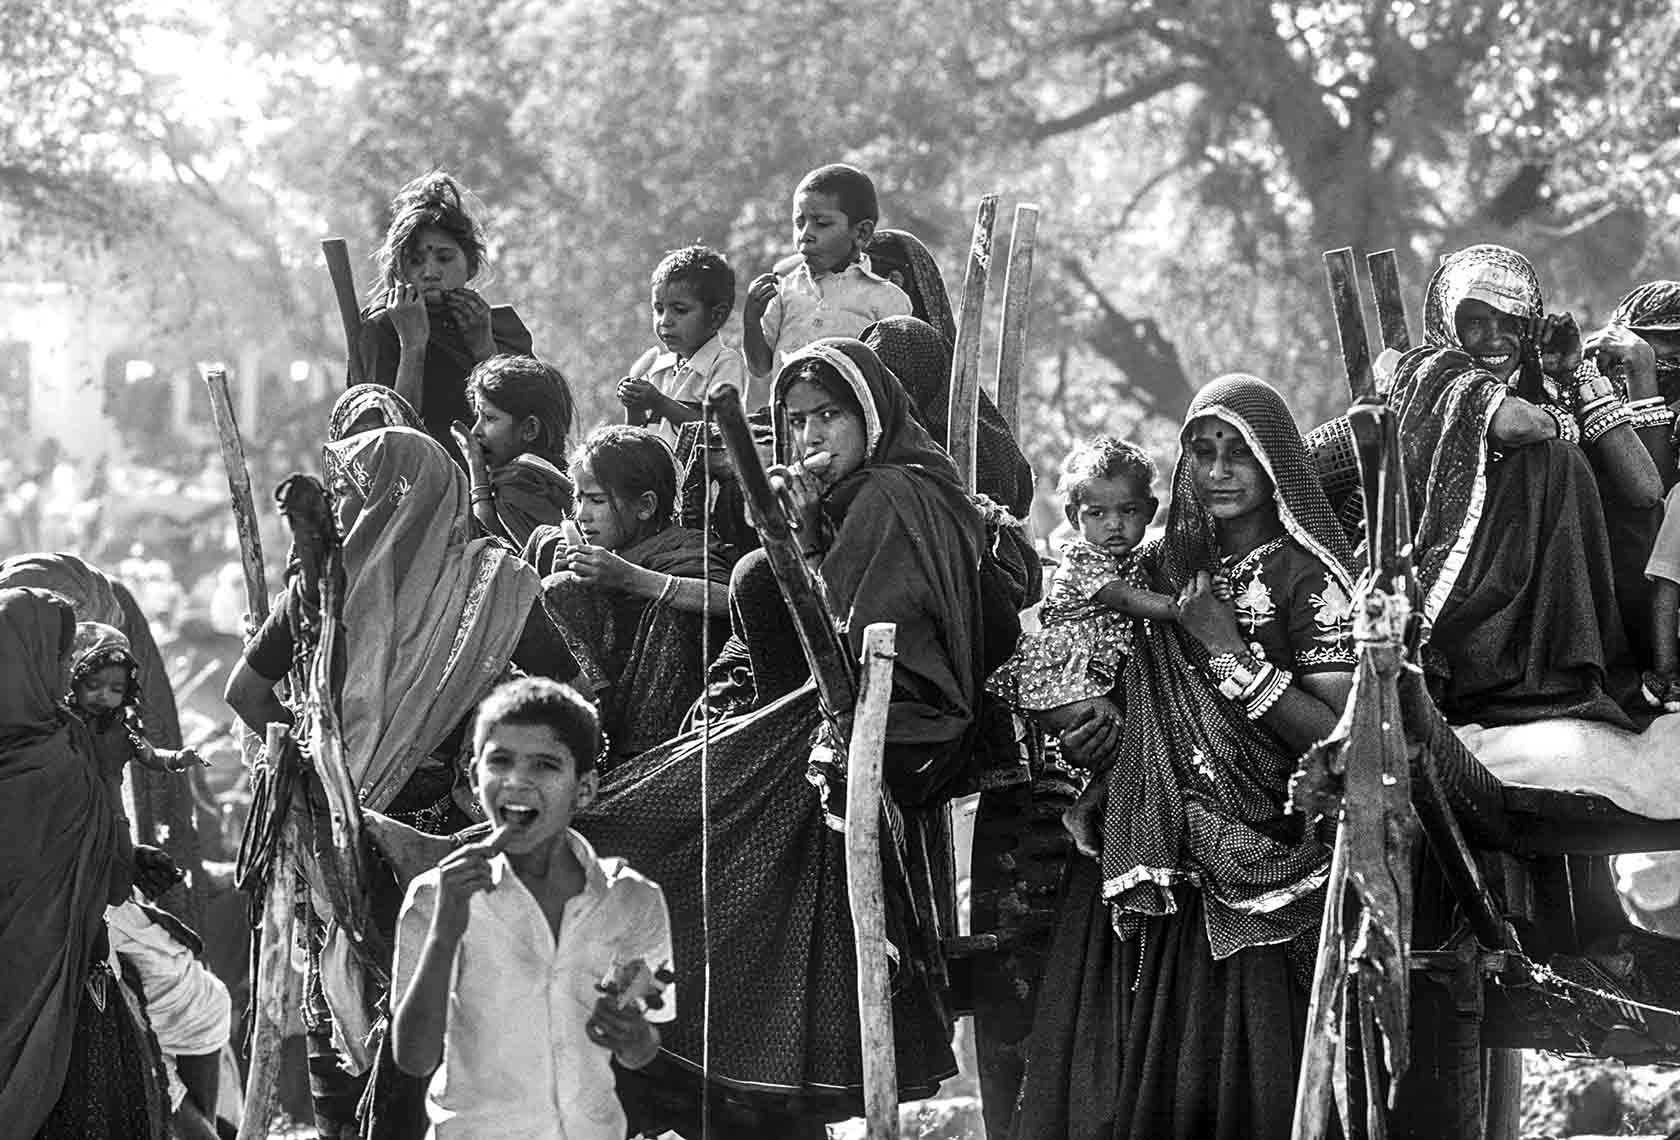 Children enjoying ice creams at a spring time fair in Rajasthan, 1986, Sudhir Kasliwal, photography